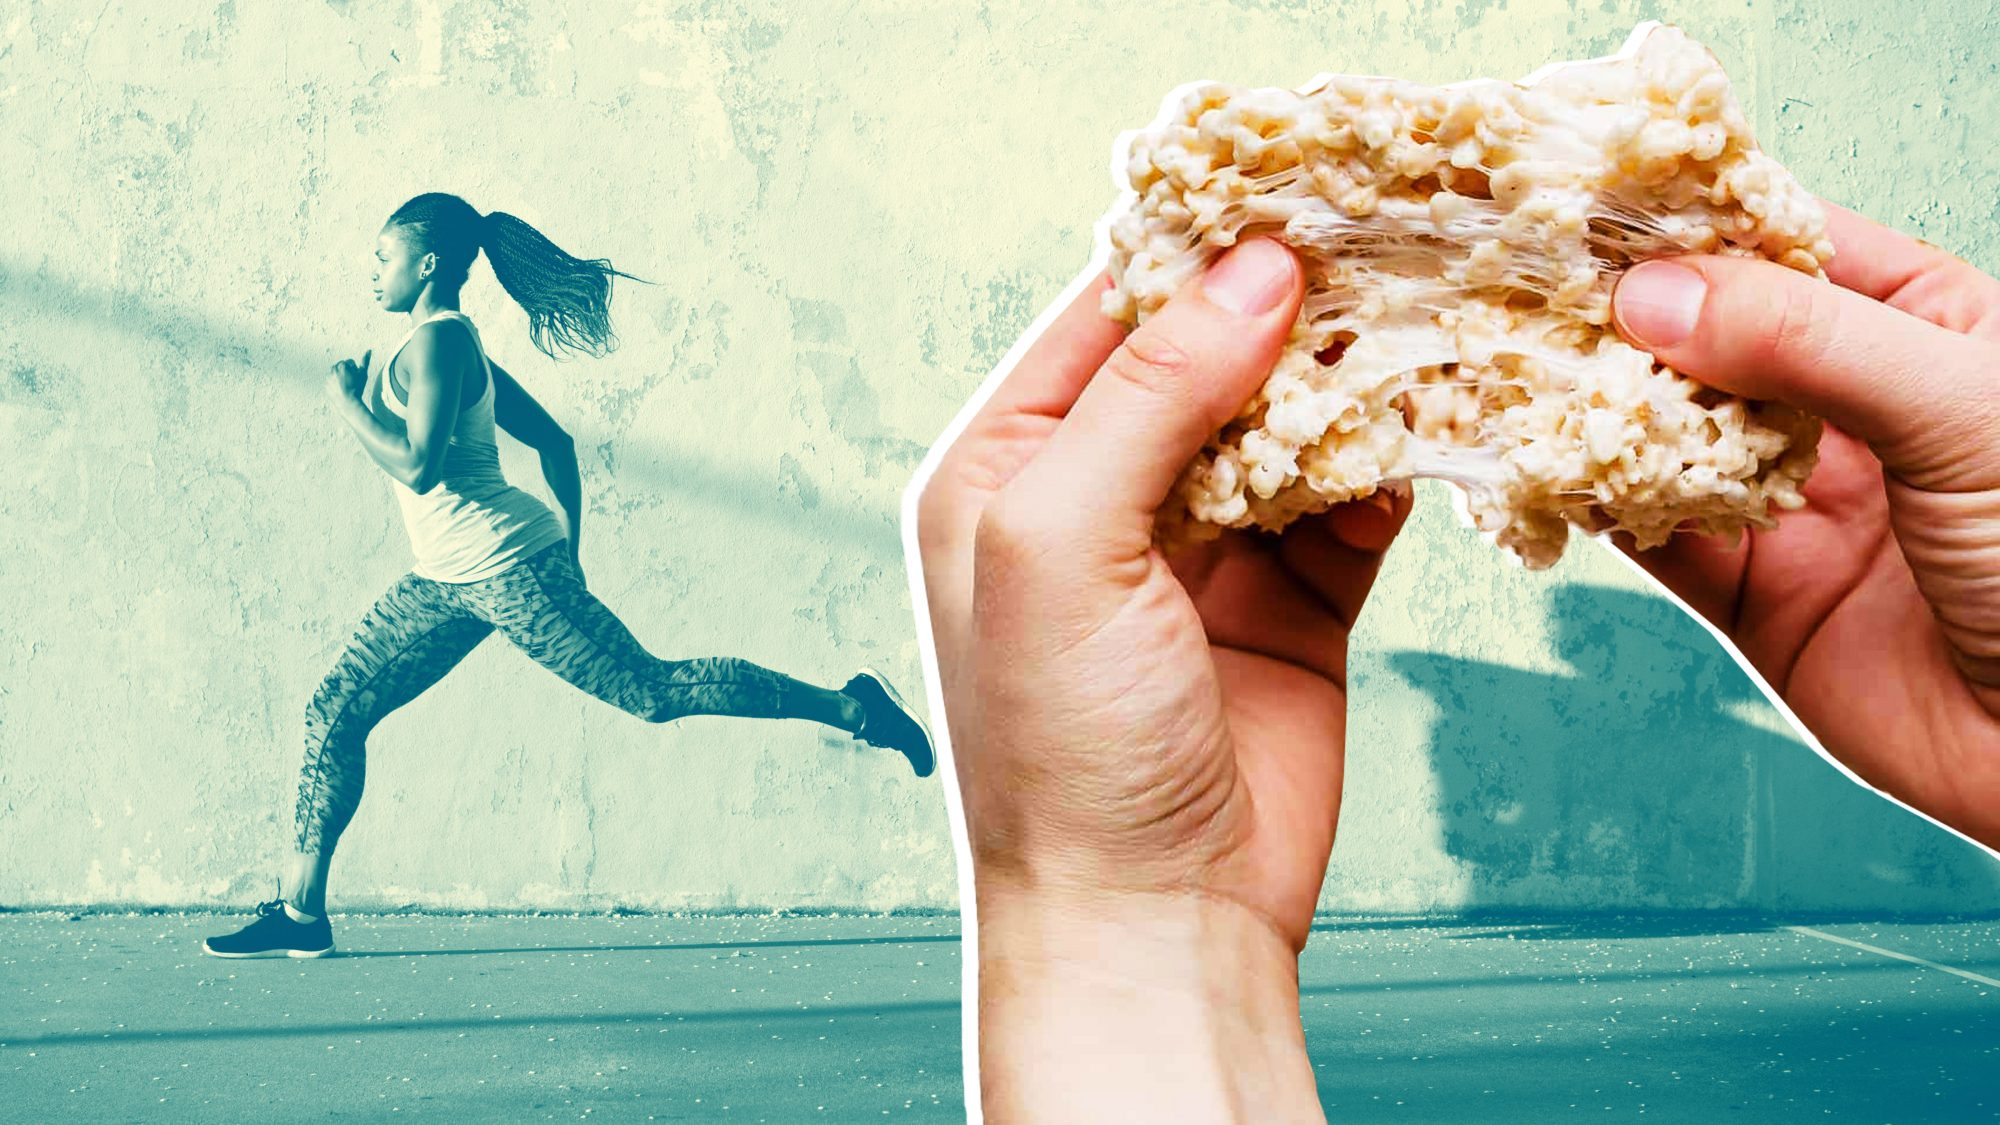 TikTok Users Are Eating Rice Krispies Treats Before Their Workouts—And It's Not Bad Advice